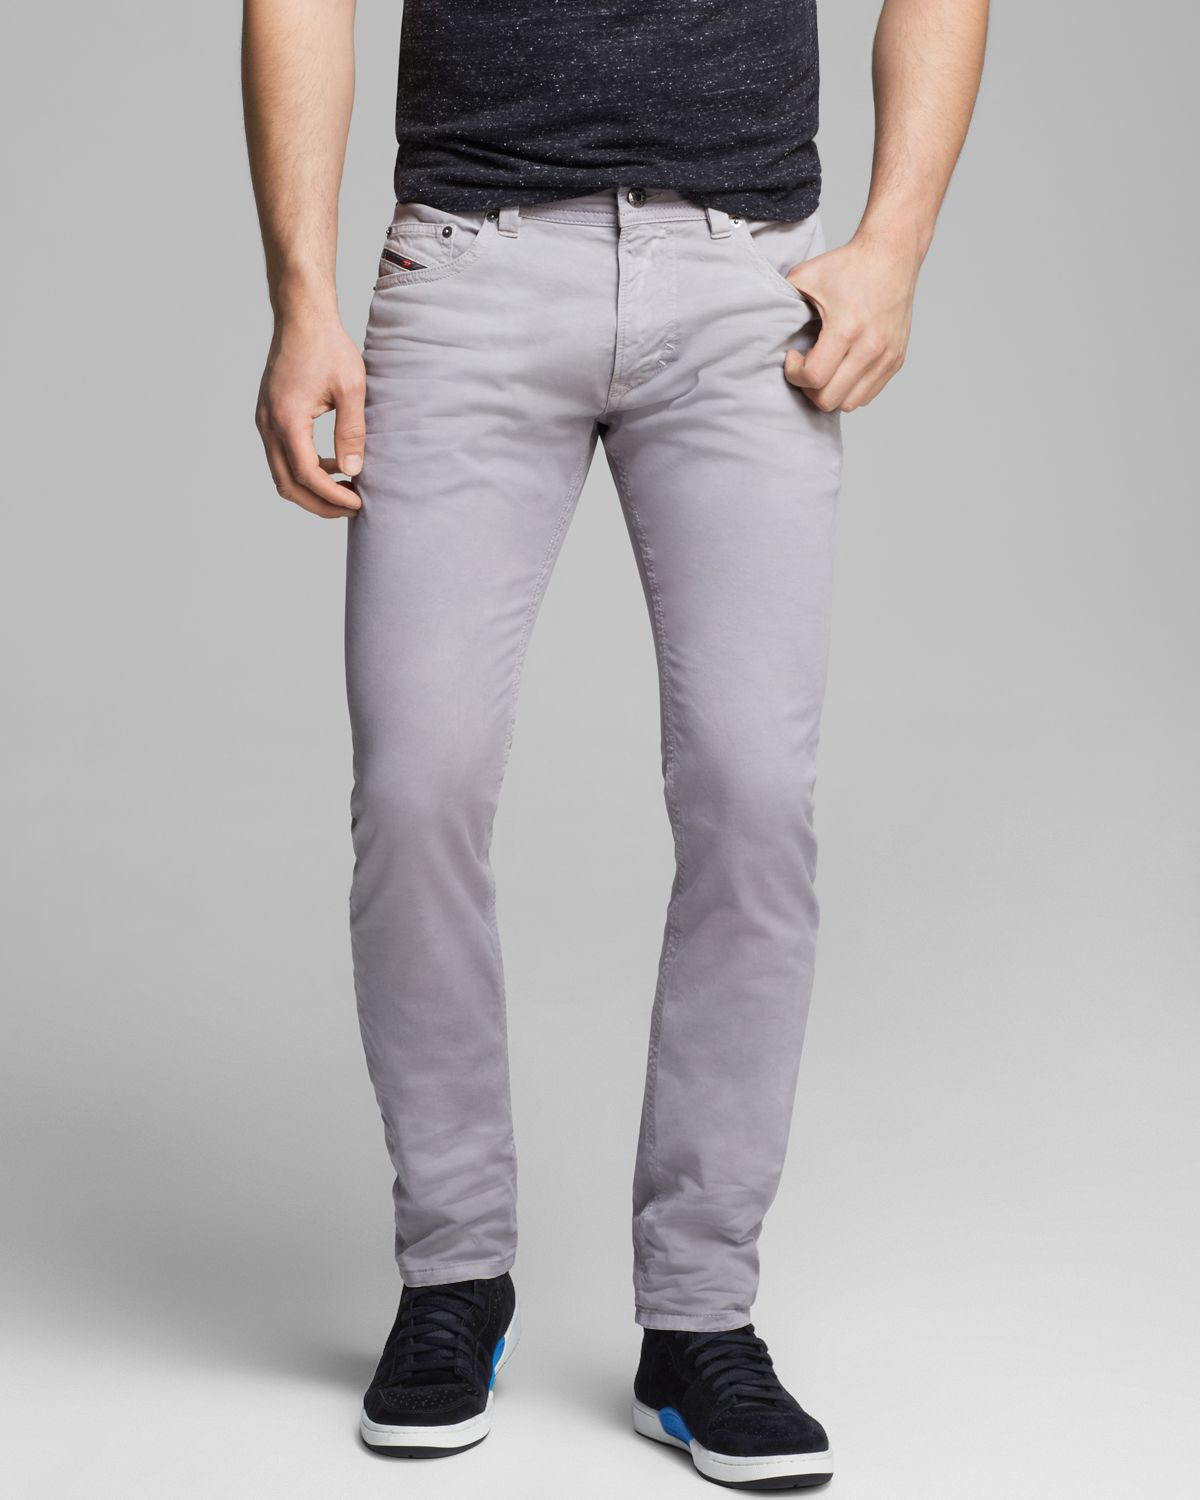 Slim Fit Jeans When you want to create the illusion of a sleek silhouette, try on a pair of slim-fit jeans in your favorite wash for a stylish, contemporary and chic look. Skinny jeans never go out of style and are easy to pair with a variety of loose-fitting tops, shirts and tanks.